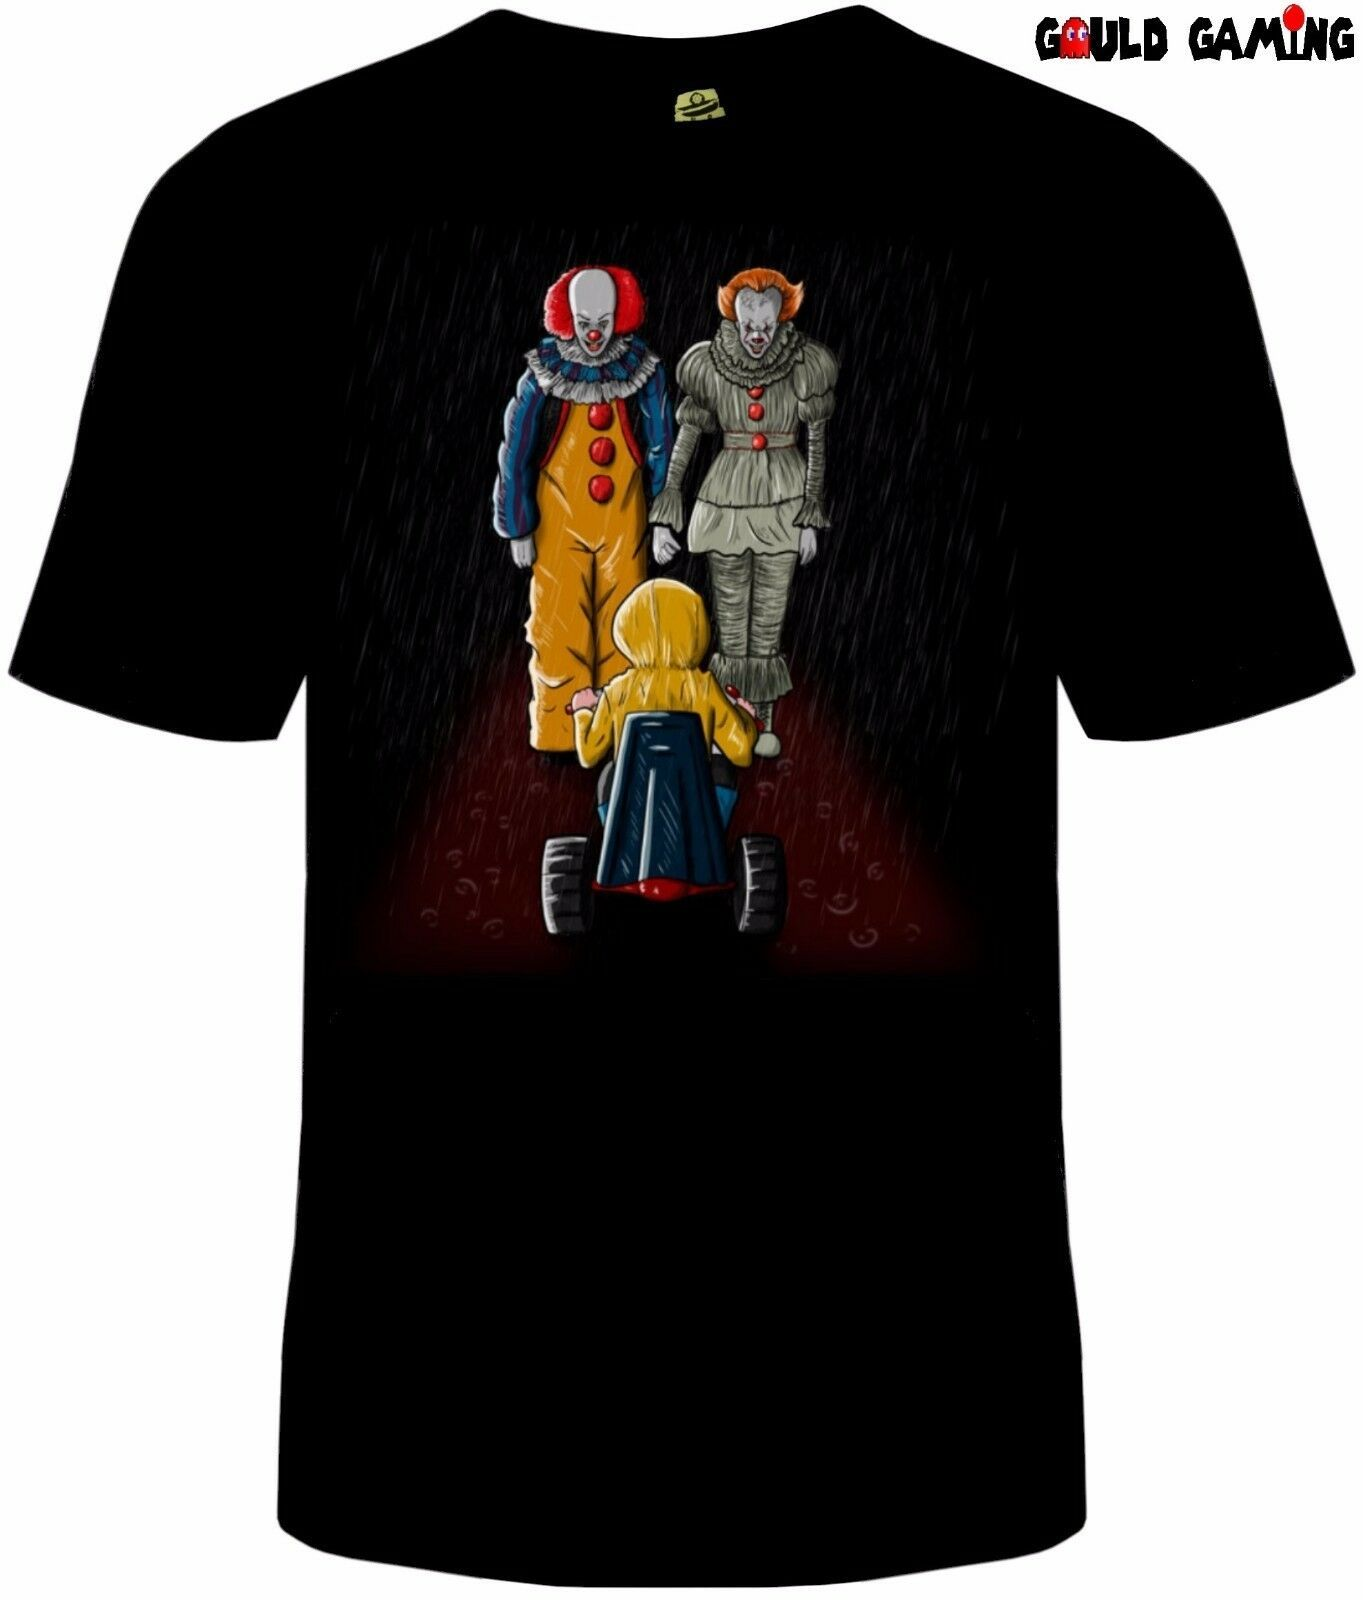 Details about Pennywise IT TShirt Unisex Funny Hiya